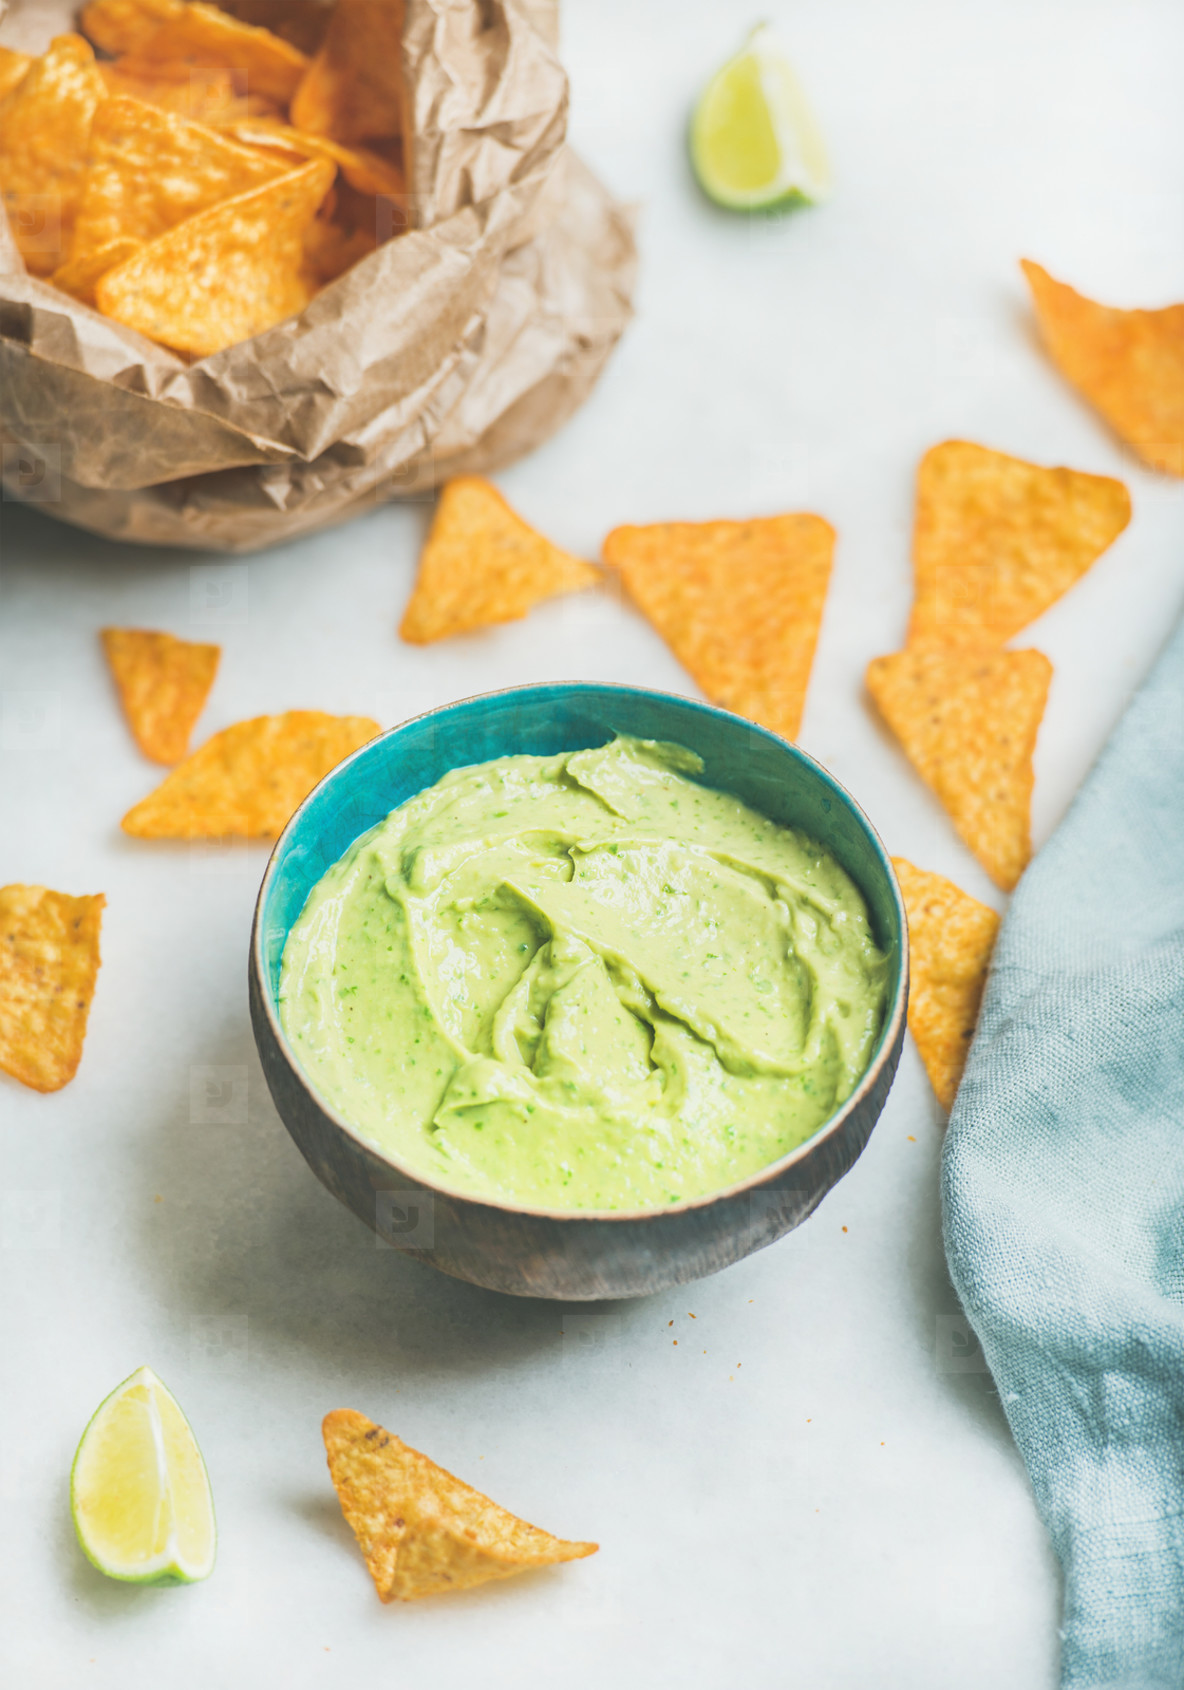 Mexican corn chips and fresh guacamole sauce over marble background